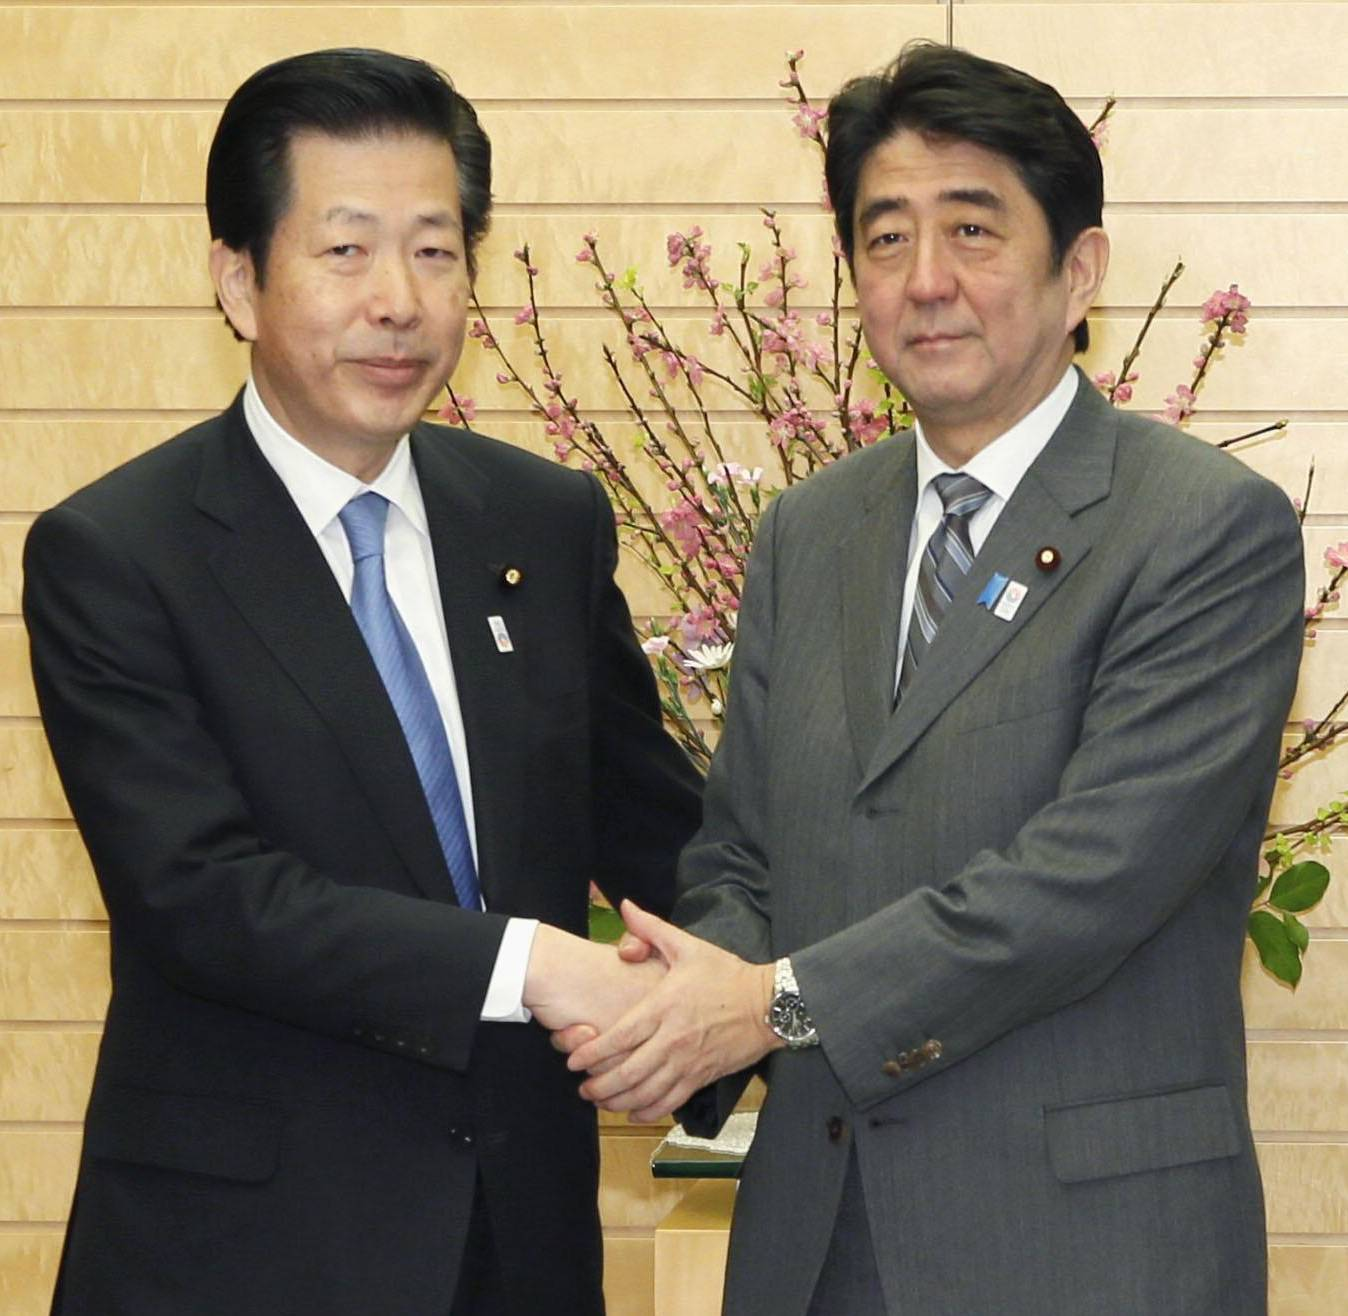 Plotting moves: Prime Minister Shinzo Abe greets New Komeito chief Natsuo Yamaguchi before their talks Monday in Tokyo. | KYODO